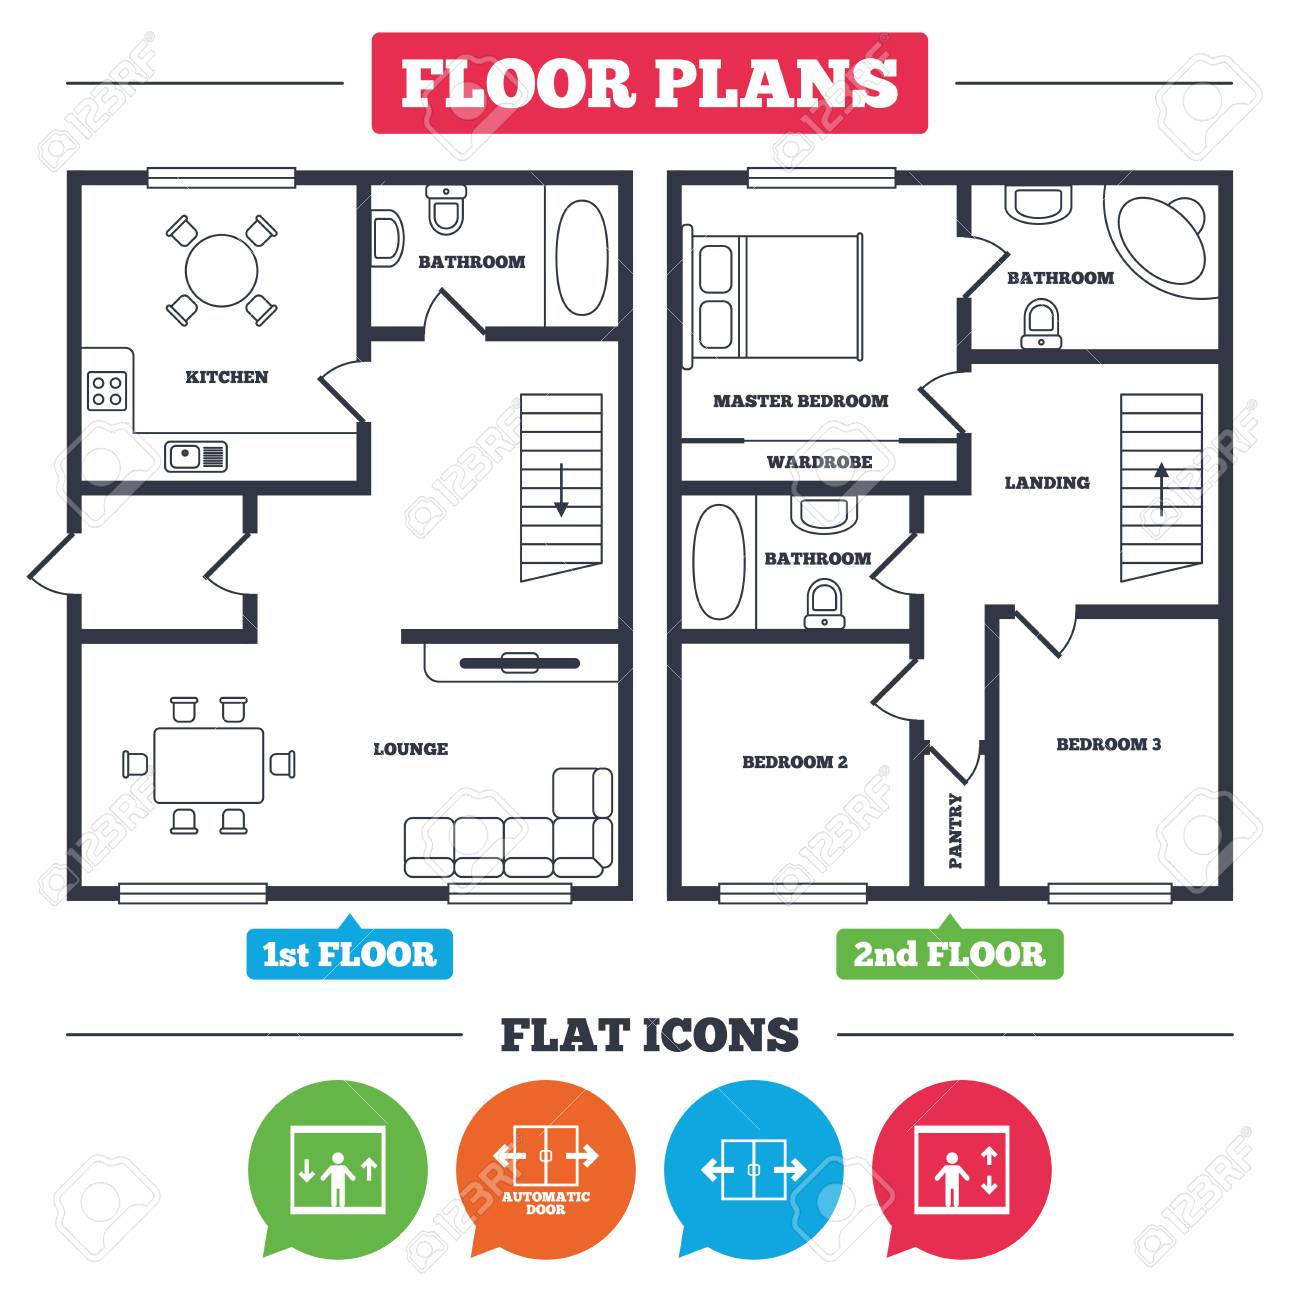 Architecture plan with furniture. House floor plan. Automatic door icons. Elevator symbols.  sc 1 st  123RF.com & Architecture Plan With Furniture. House Floor Plan. Automatic ...